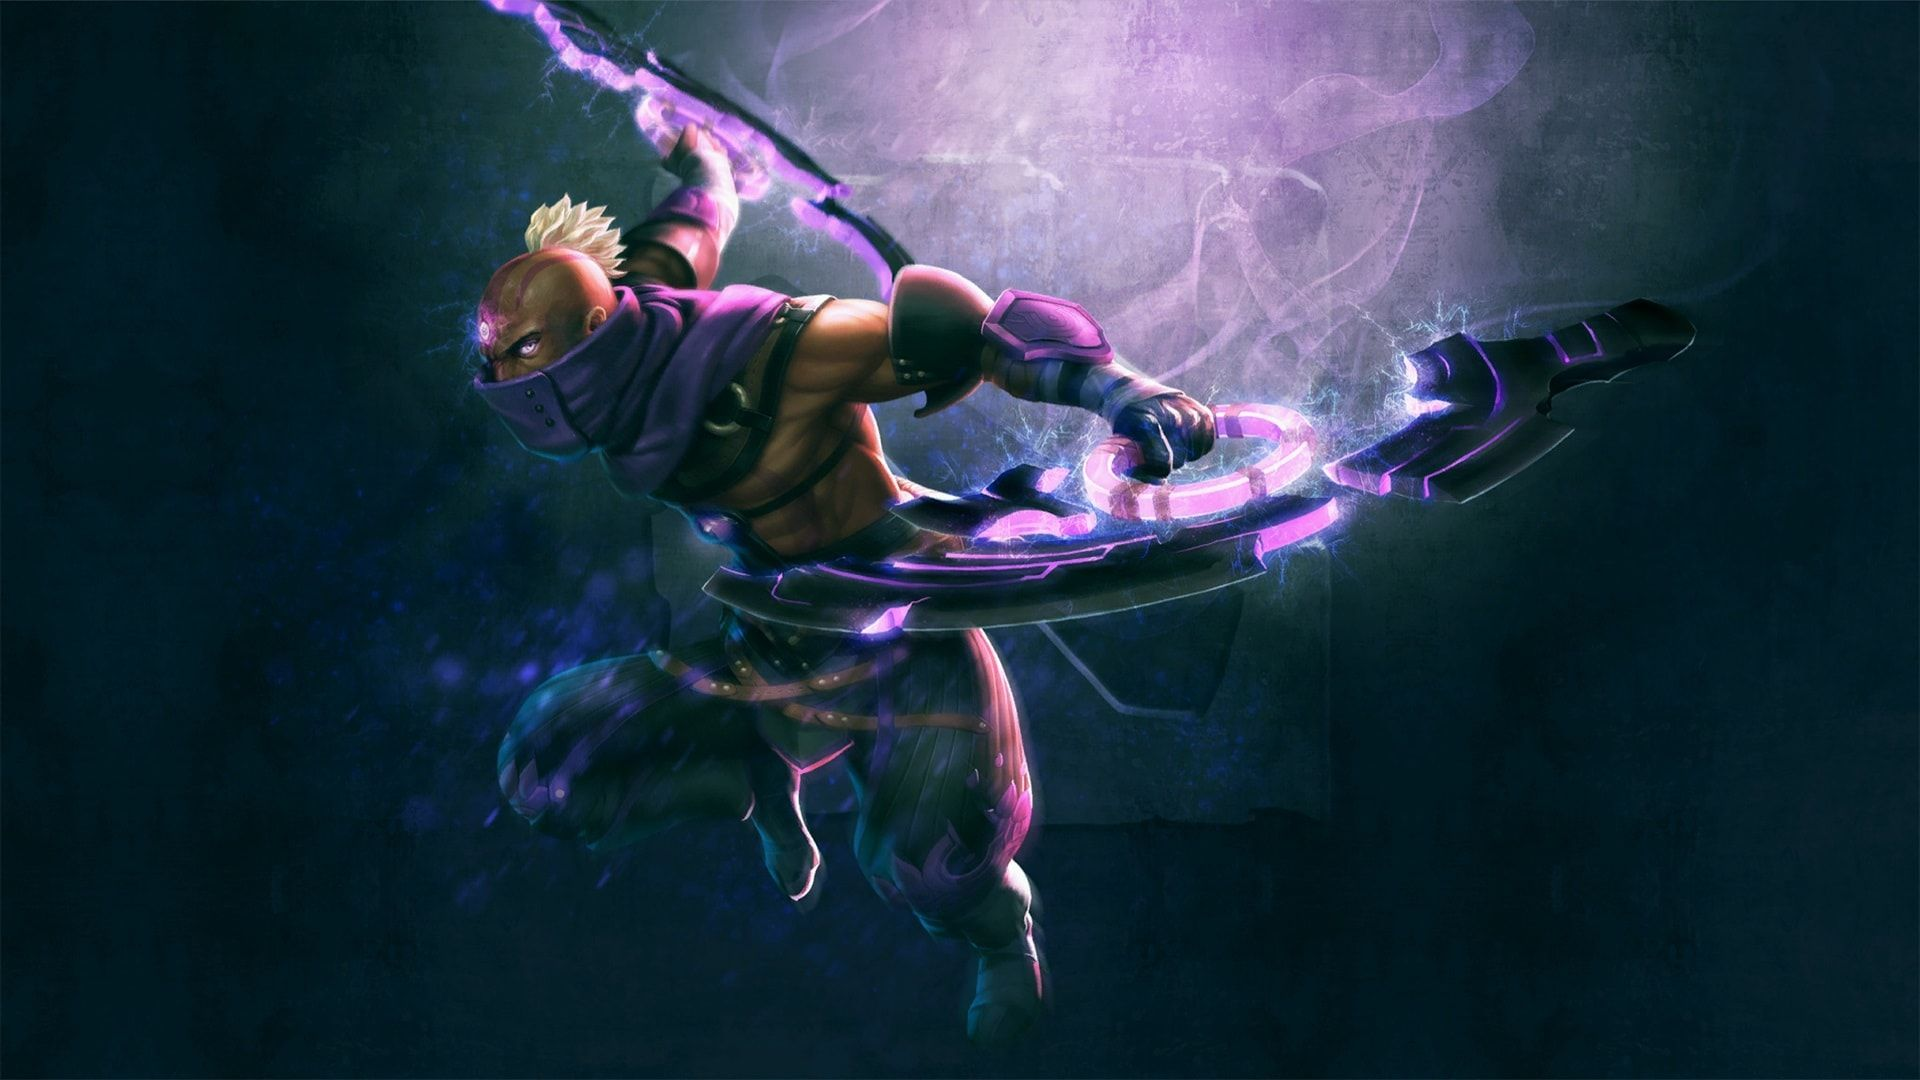 Hd wallpaper dota 2 - Anti Mage Wallpapers Dota 2 Hd Wallpapers 10 Dota 2 Wallpaper